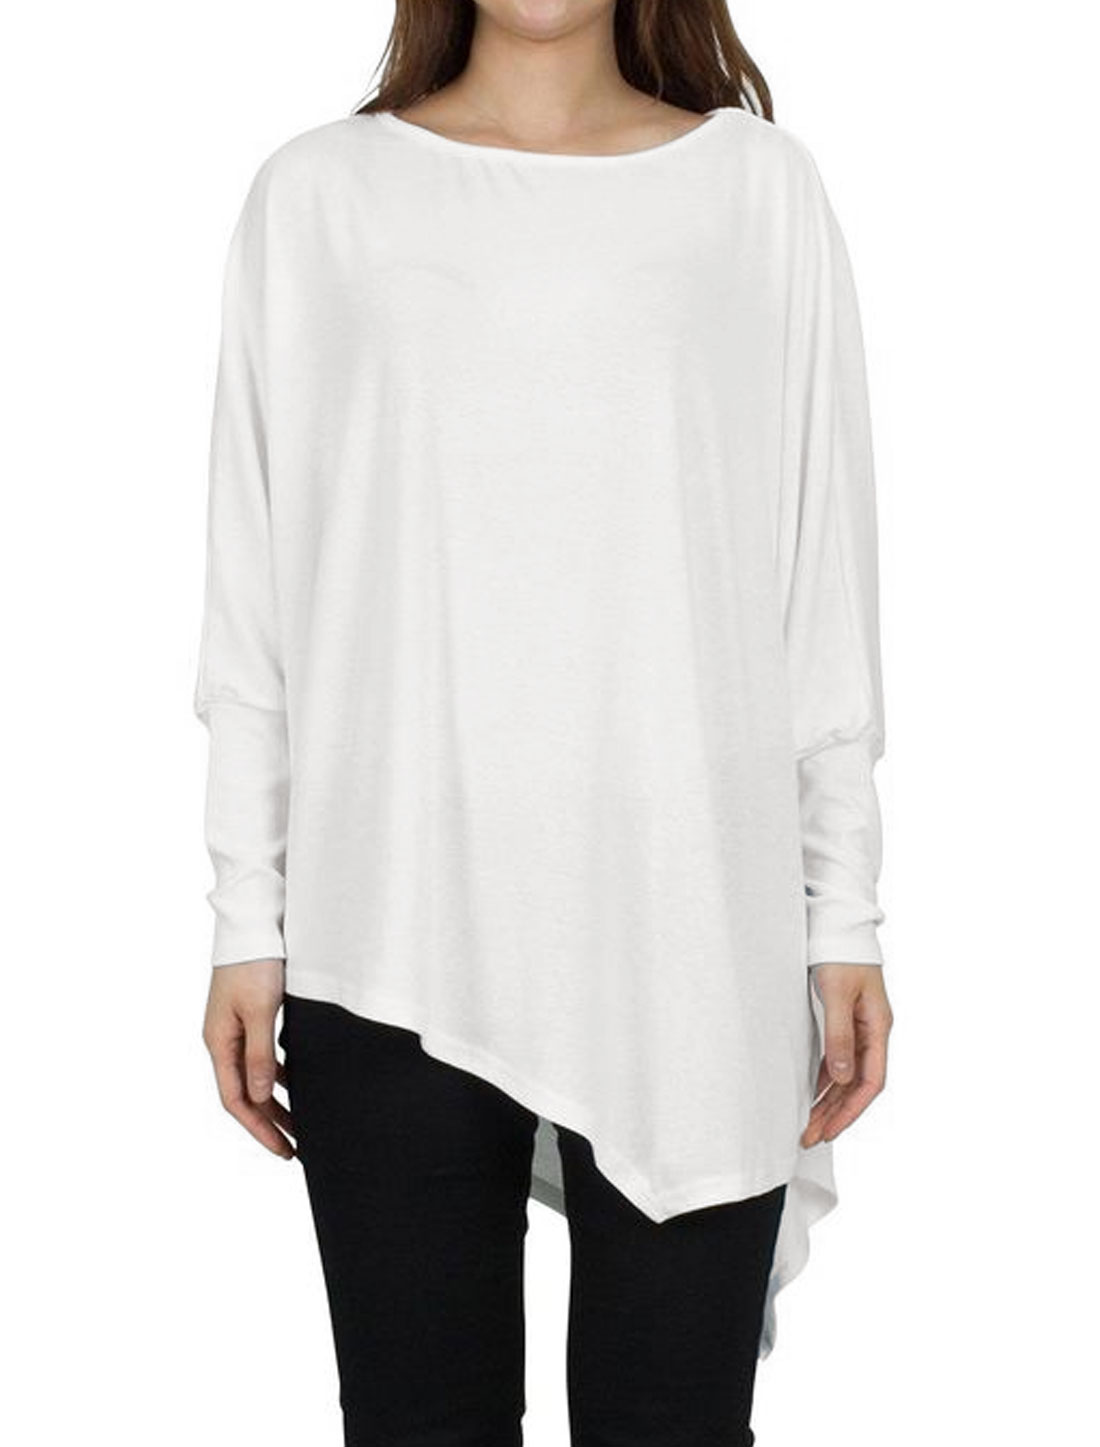 Women Round Neck Long Batwing Sleeves Loose Fit Asymmetric Hem Tunic Top White M